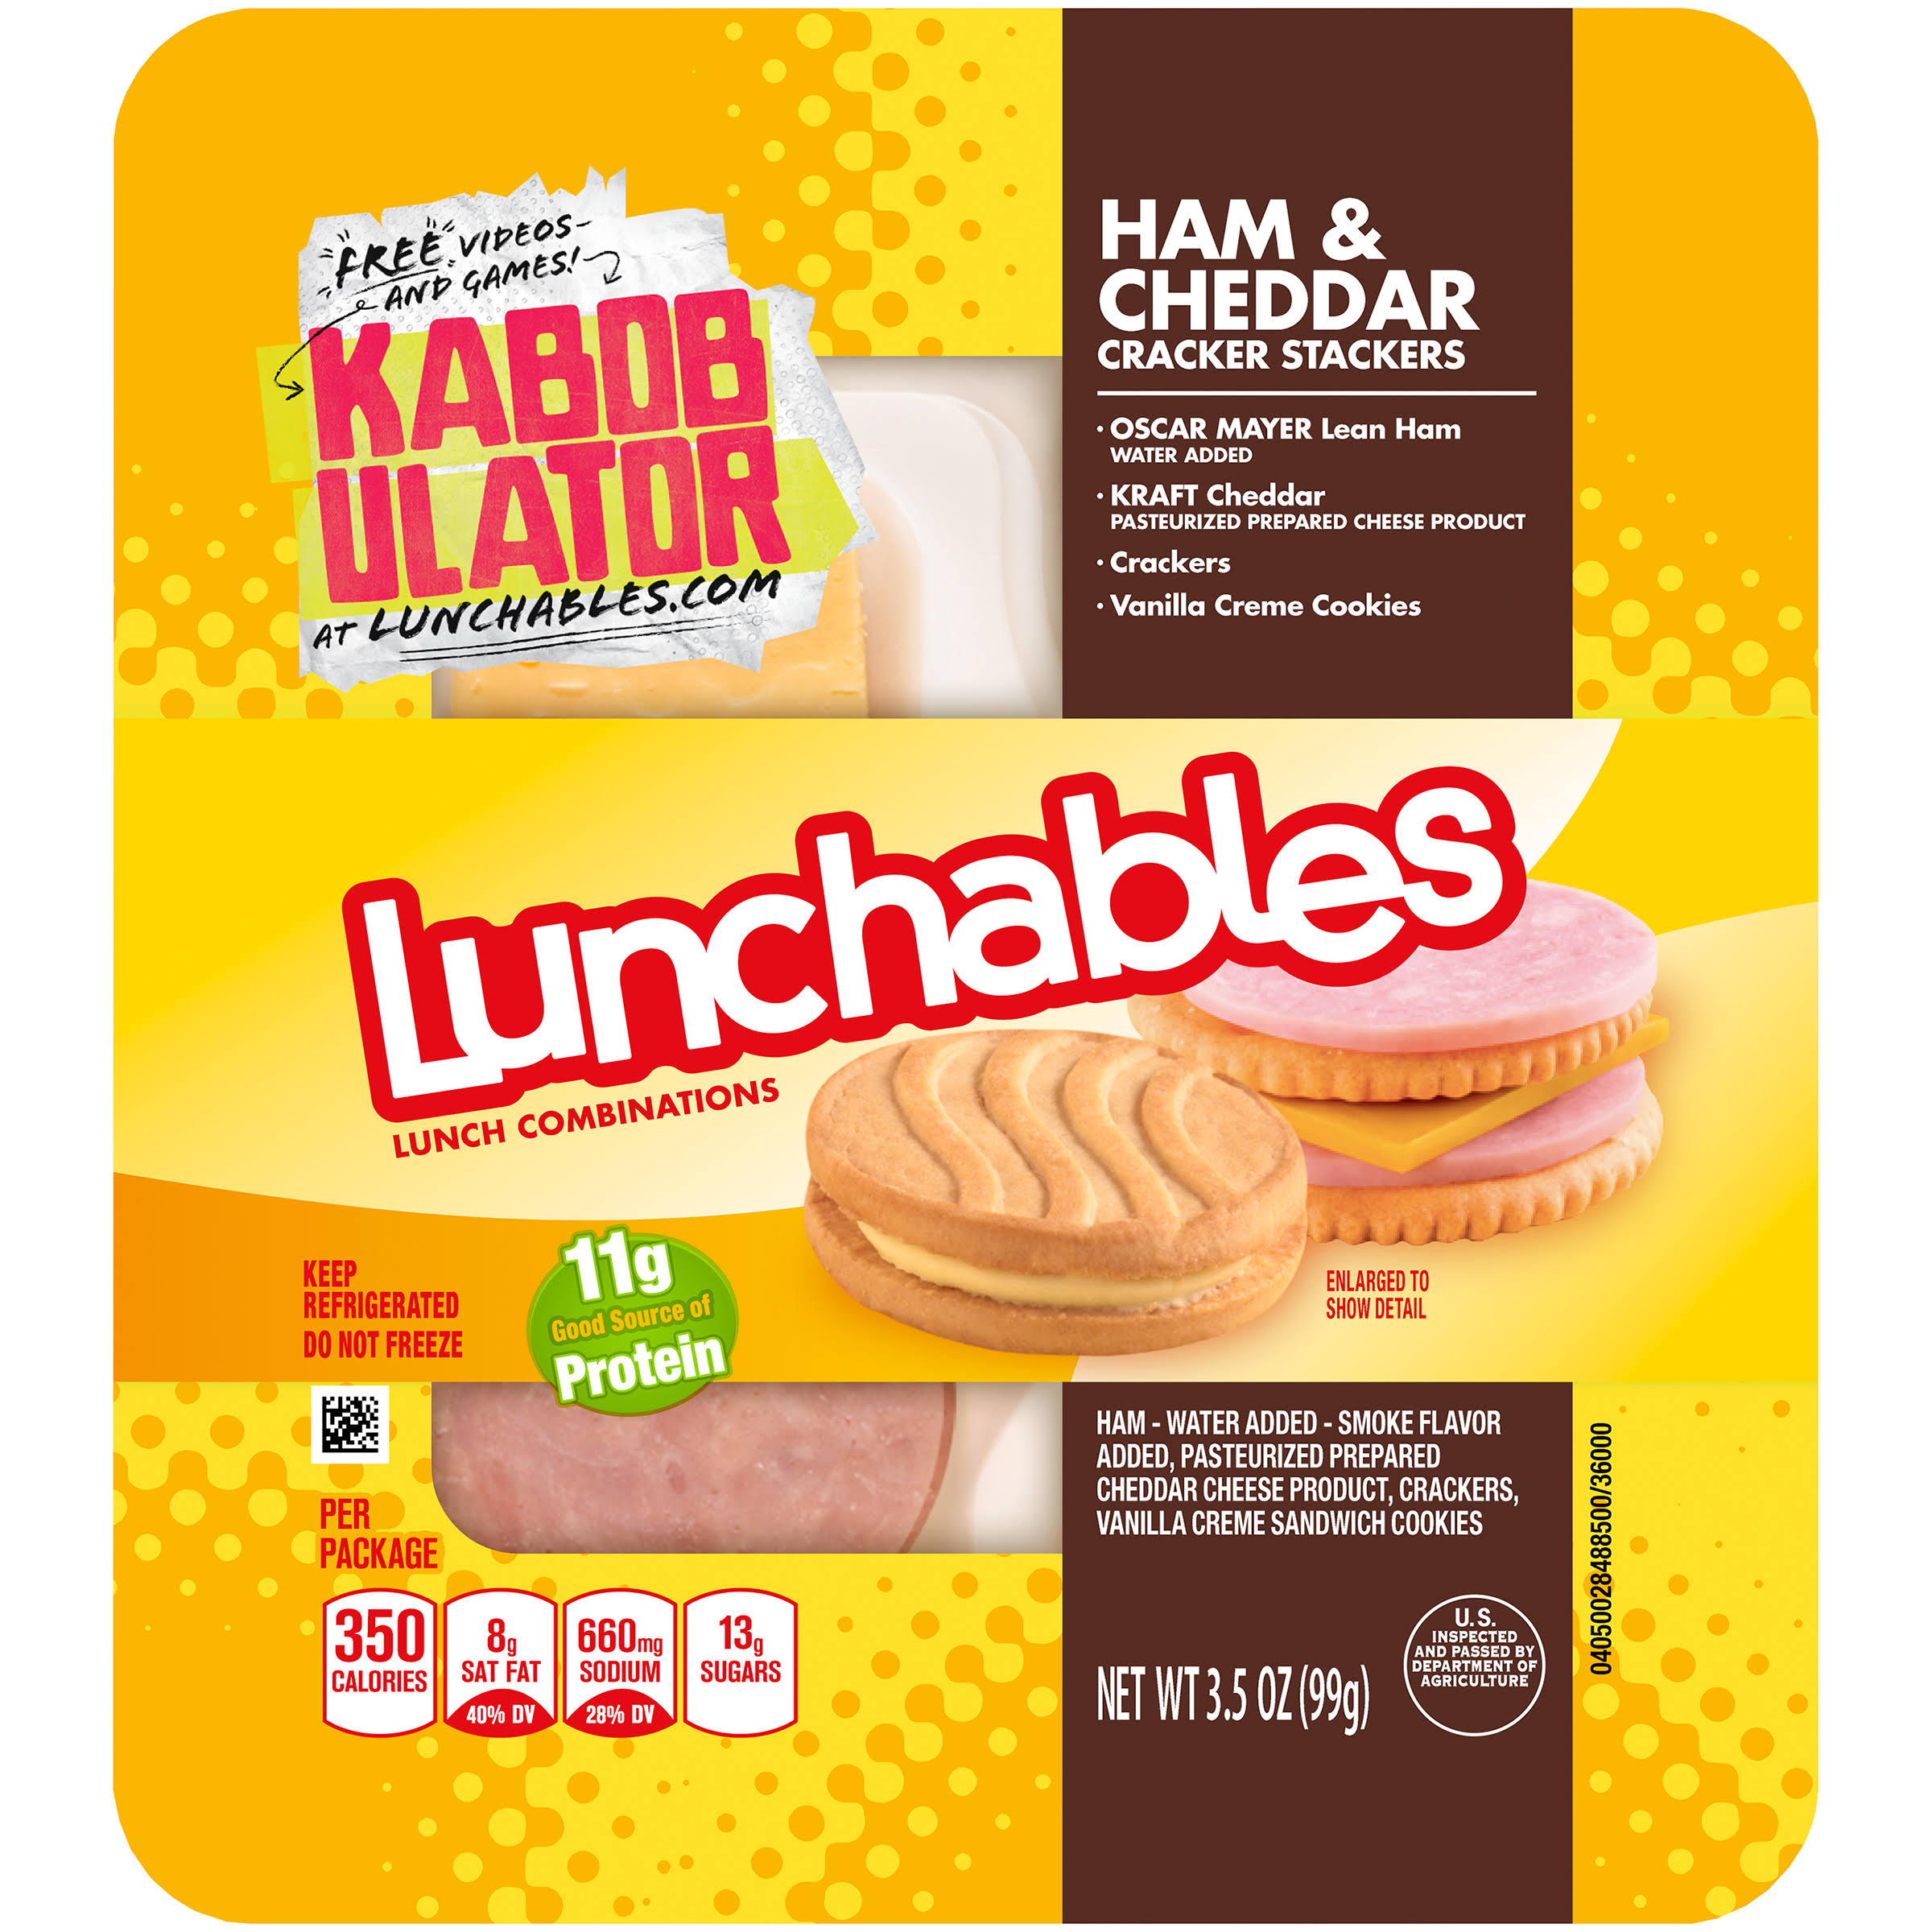 Lunchables Cracker Stackers Lunch Combinations - Ham & Cheddar, 3.5oz